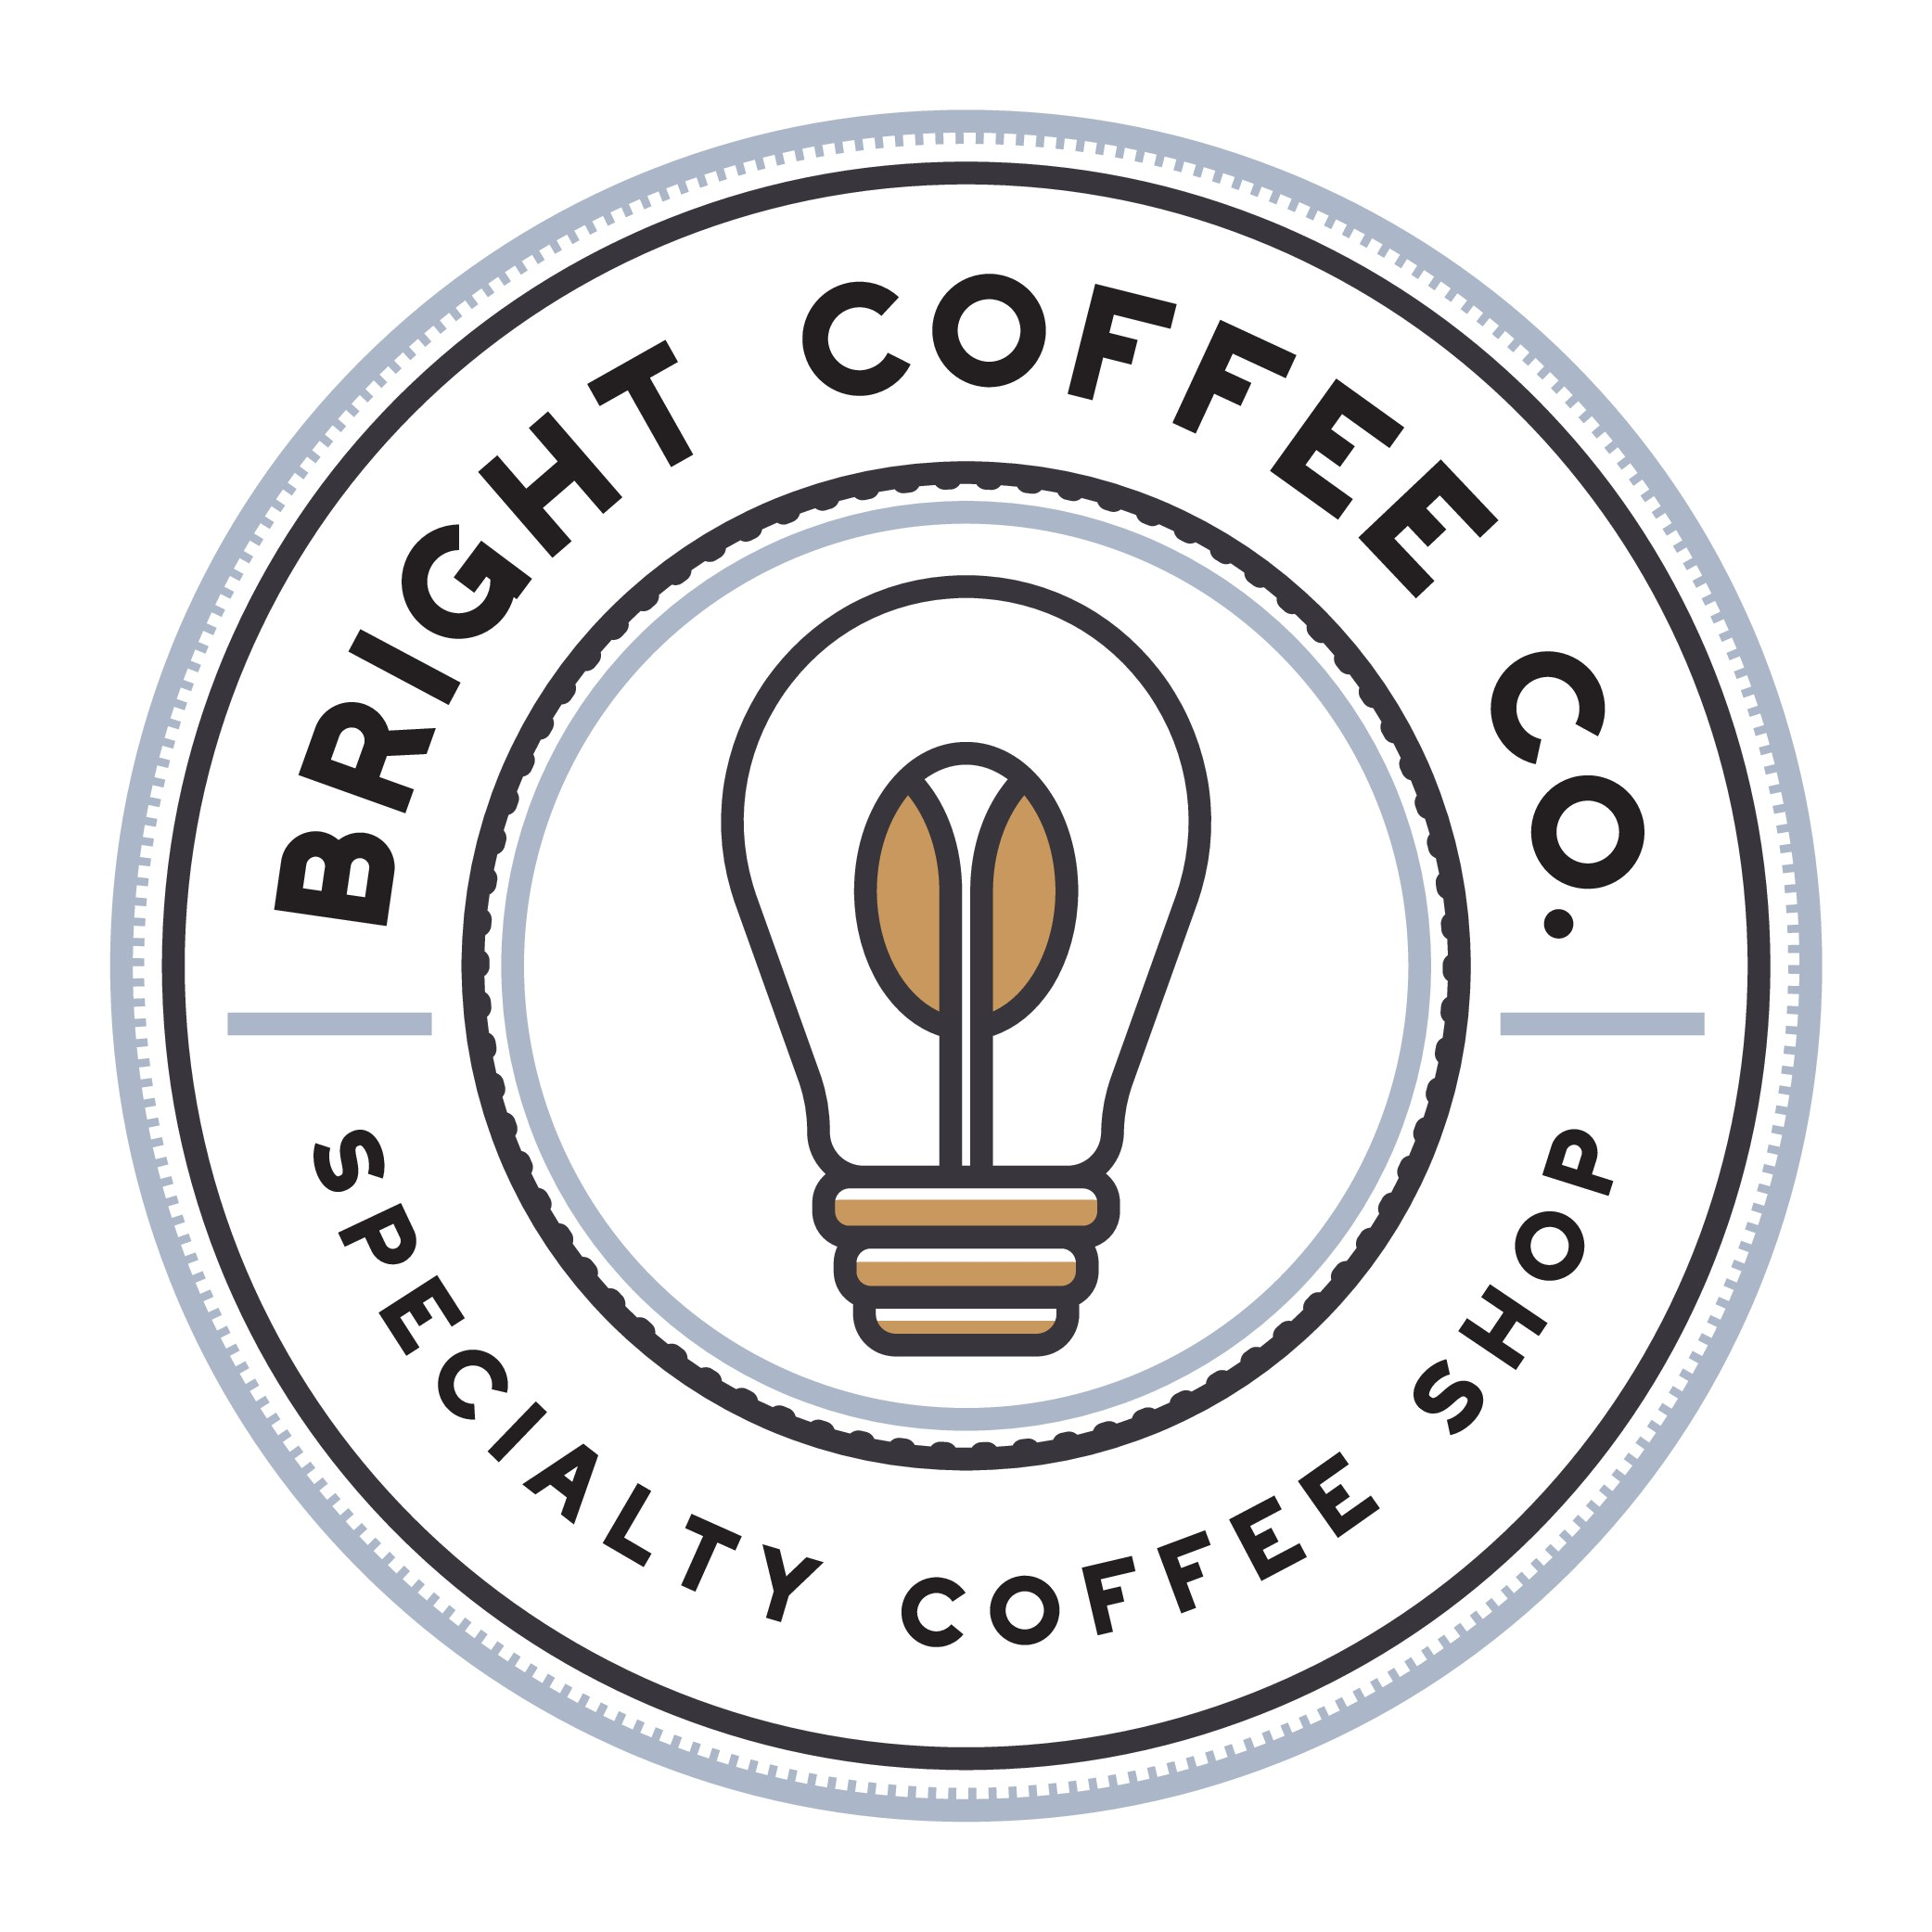 Clean and expressive logo for a welcoming and sophisticated coffee shop